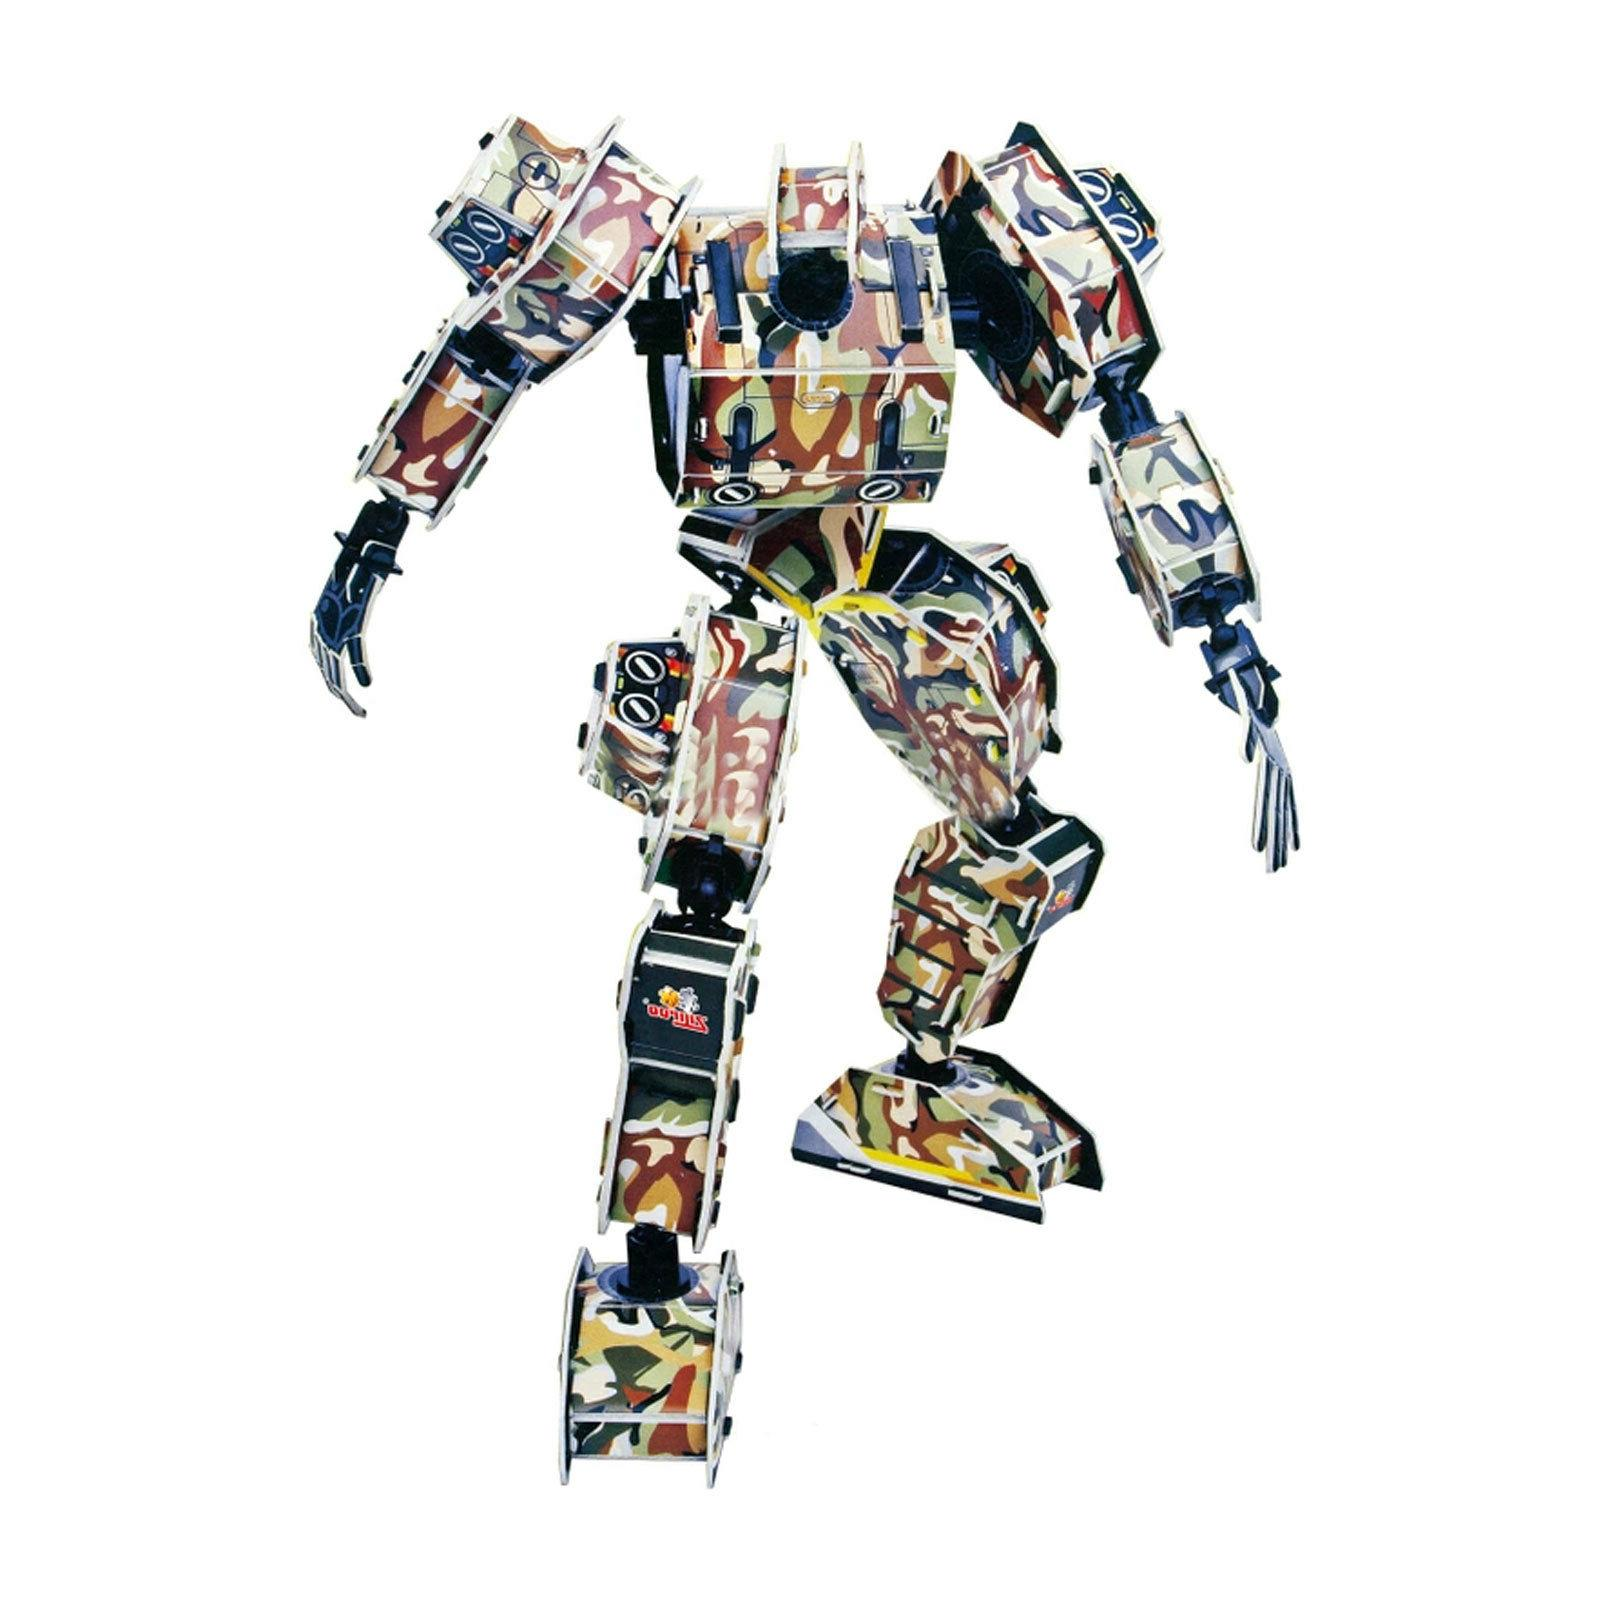 army robot building toy 59 piece 3d